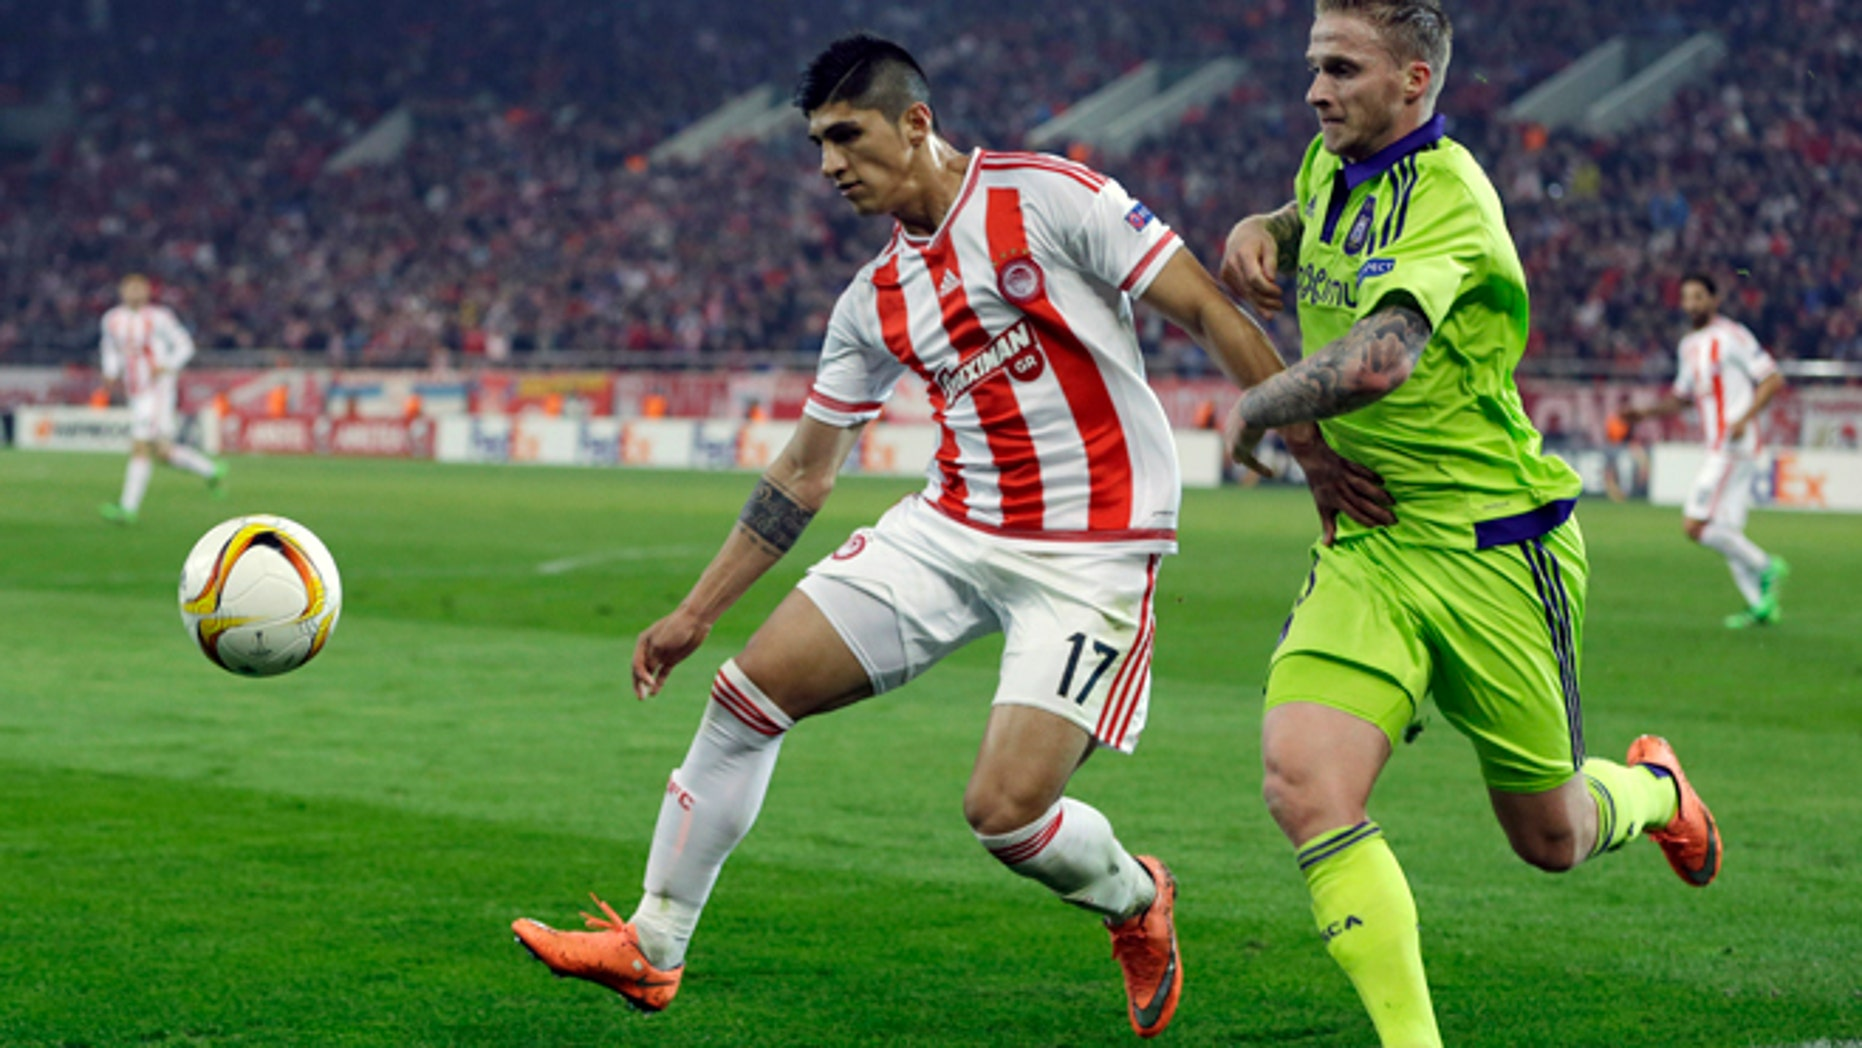 FILE - In this Thursday, Feb. 25, 2016 file photo, Olympiakos' Alan Pulido, left, fights for the ball with Anderlecht's Alexander Buttner during the Europa League round of 32 soccer match at the Georgios Karaiskakis stadium in the port of Piraeus, near Athens. A state official says that Mexican soccer star Alan Pulido has been kidnapped in the northern border state of Tamaulipas. Pulido is a forward for the Greek team Olympiacos and has made several appearances for Mexicos national team, though he wasnt called up for the upcoming Copa America tournament. The official says the 25-year-old player was kidnapped near his hometown of Ciudad Victoria on Sunday, May 29, 2016 after leaving a party. (AP Photo/Thanassis Stavrakis, file)